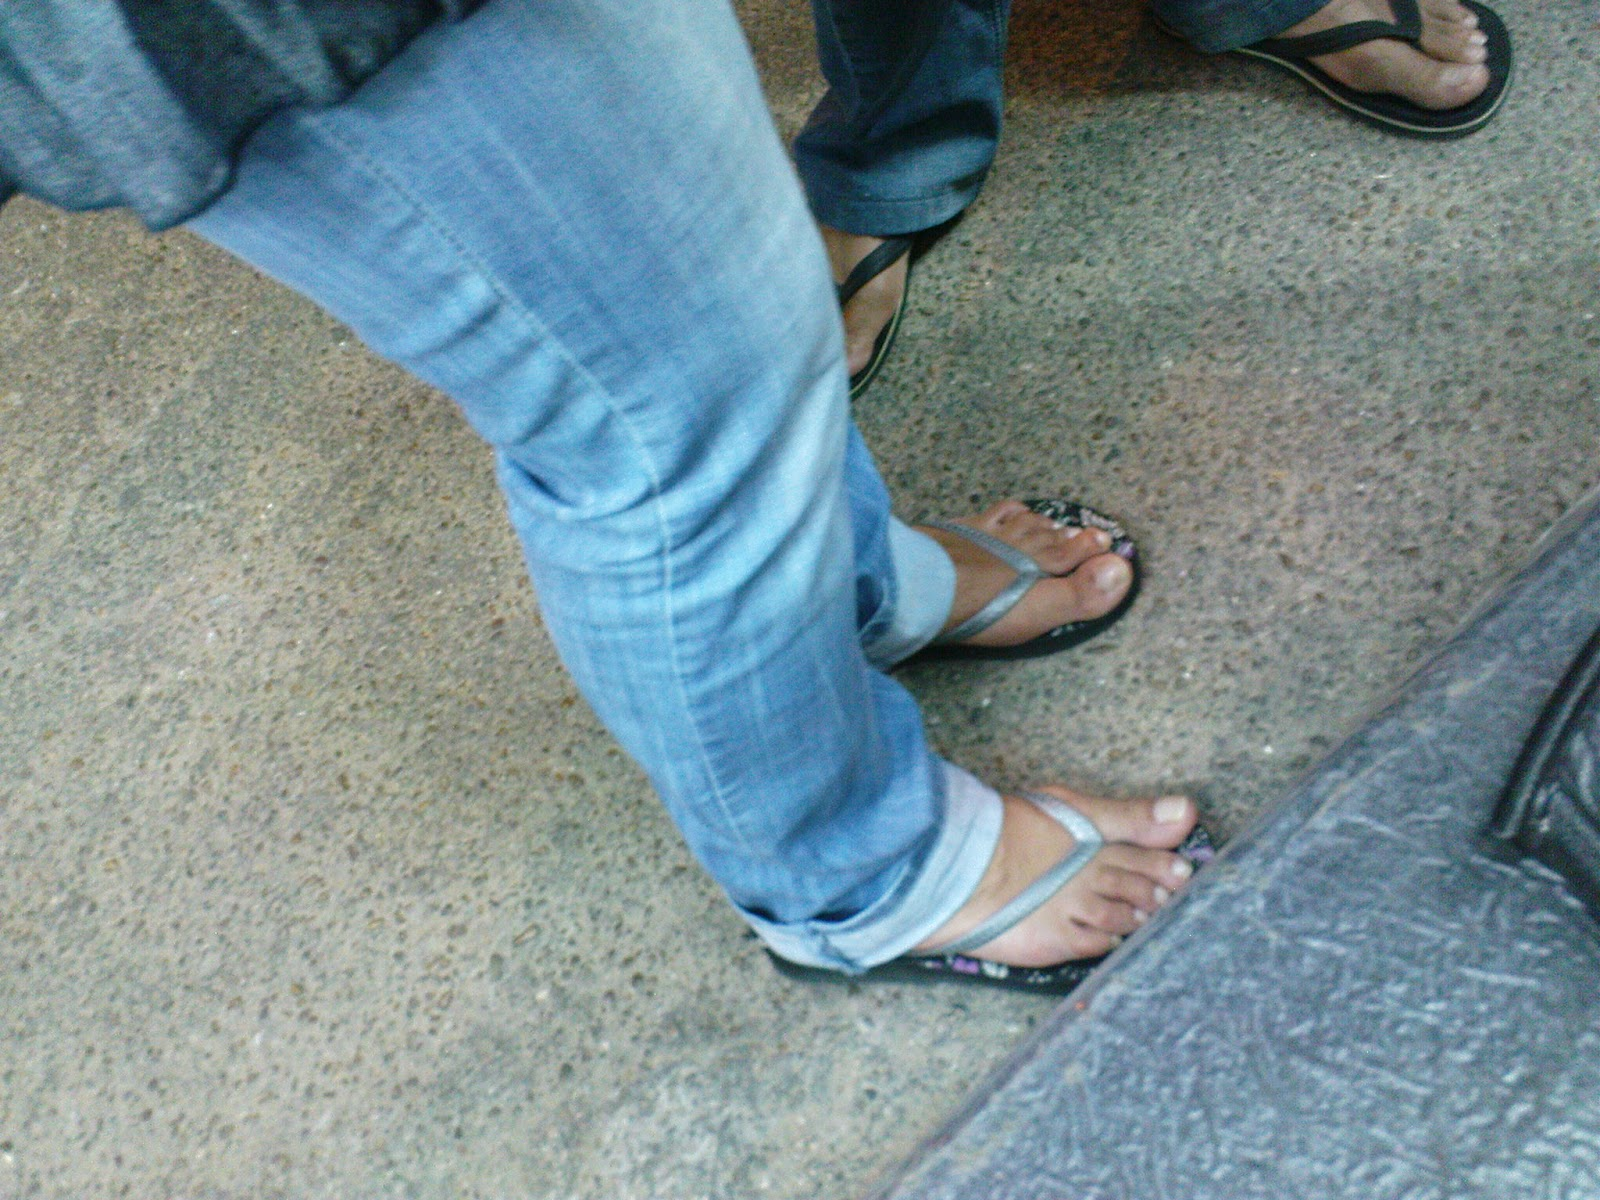 Legs And Feet On The Street Bunions In Chuncky Flip Flops